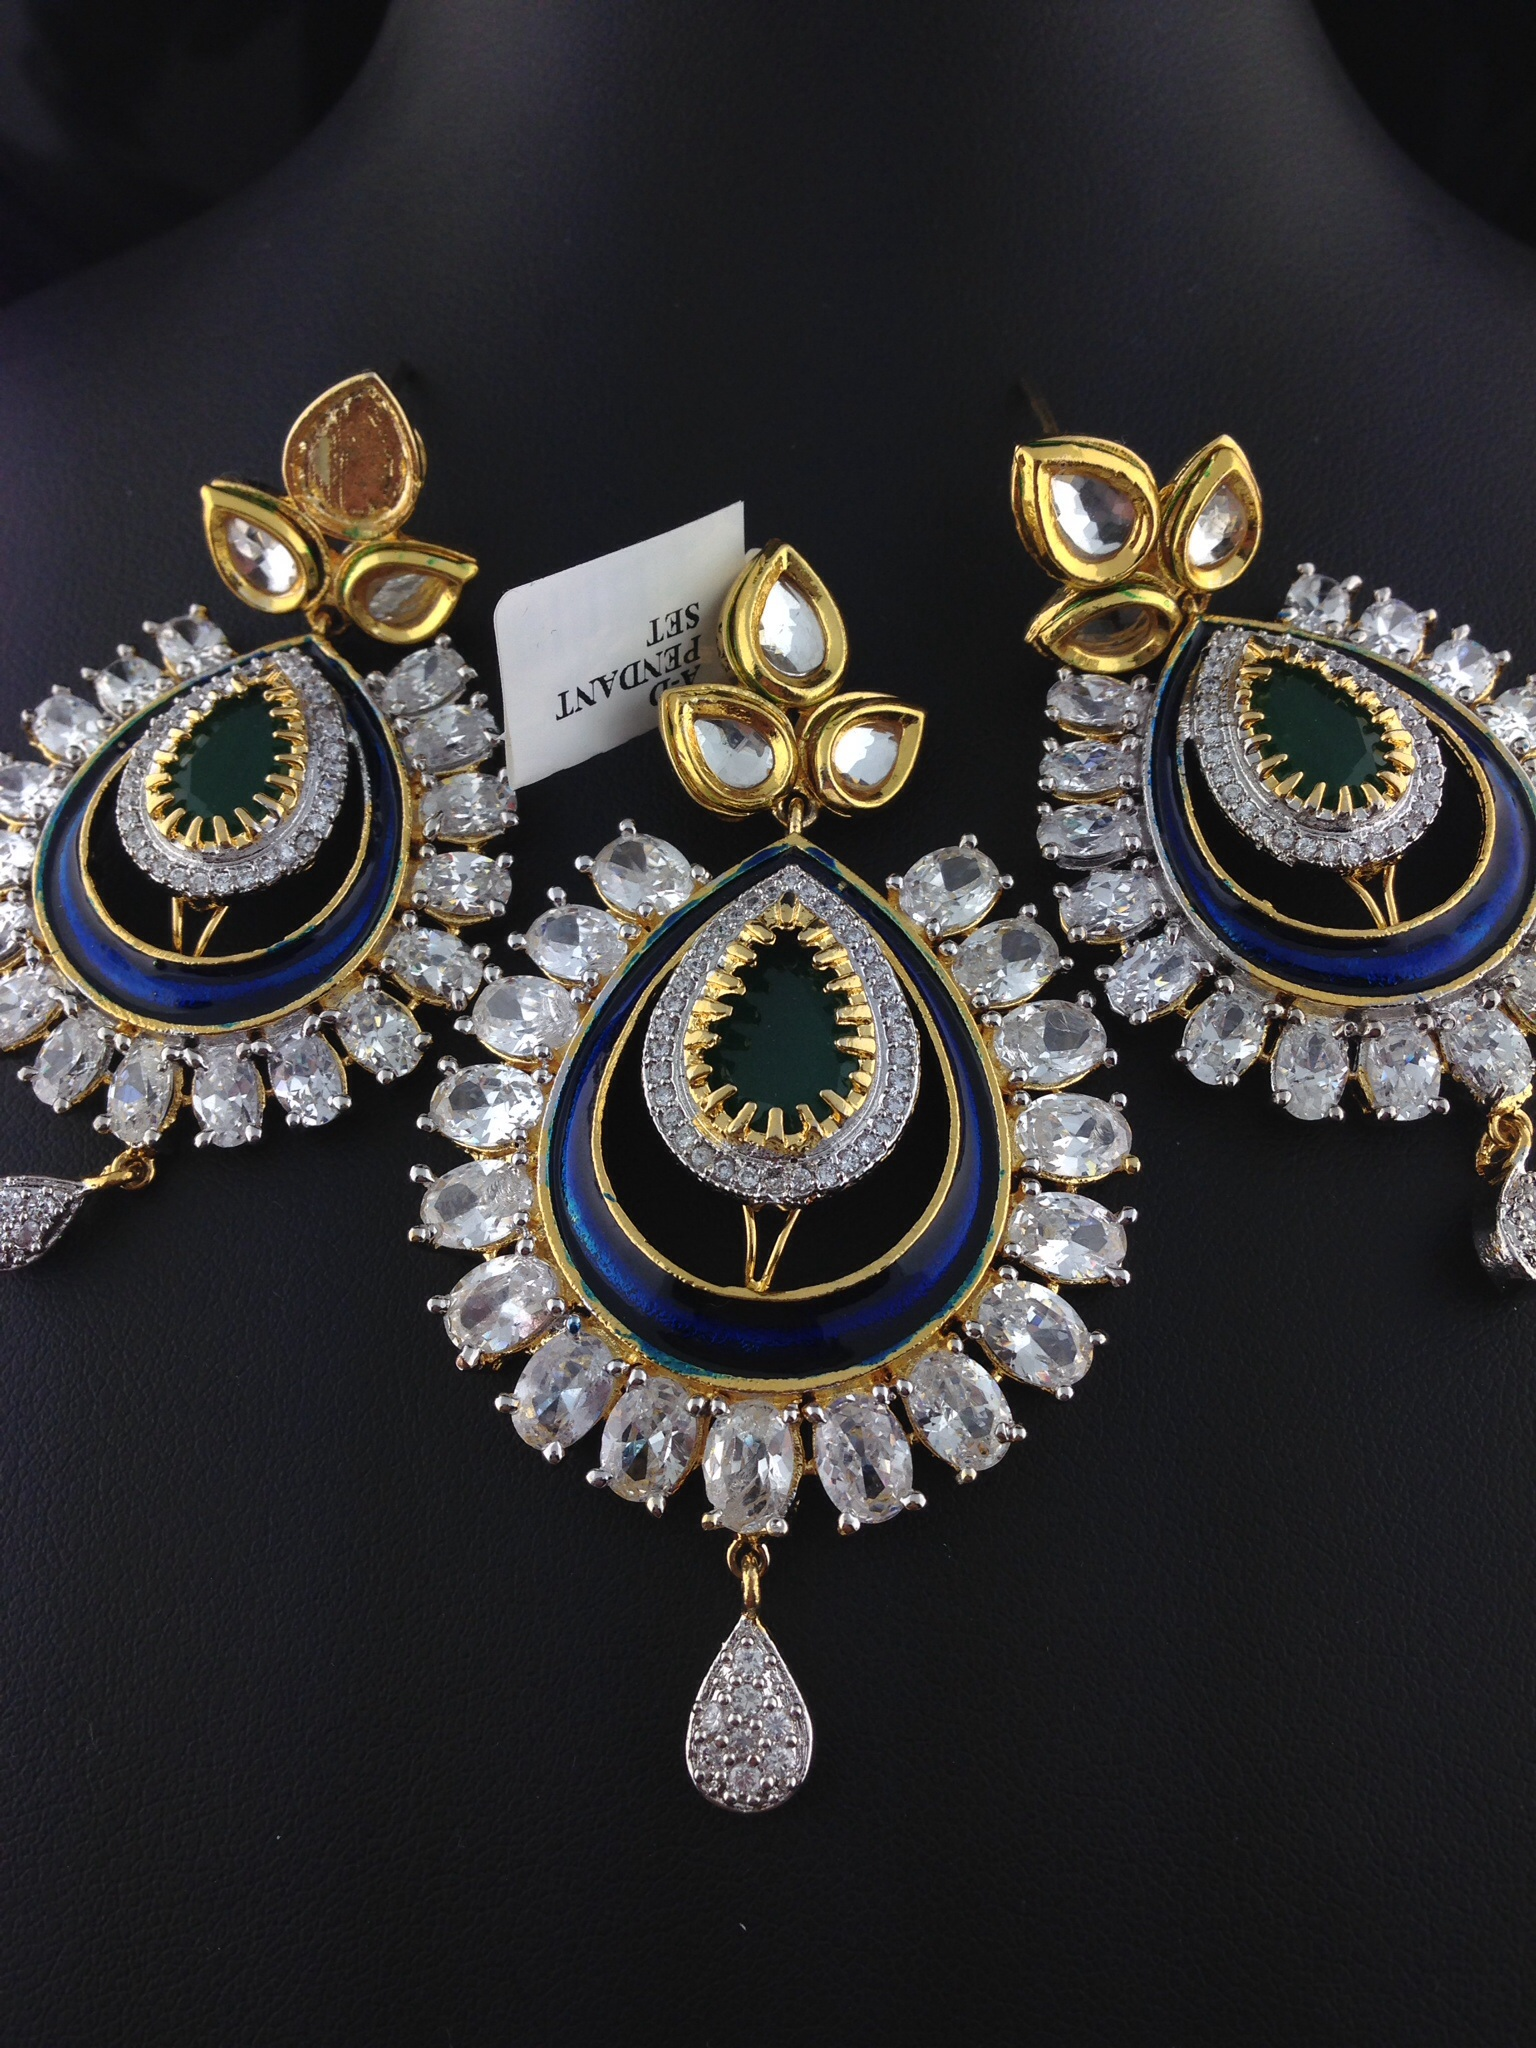 jewellery indian jewelry designs and large diamond jewel necklace pin kirtilals